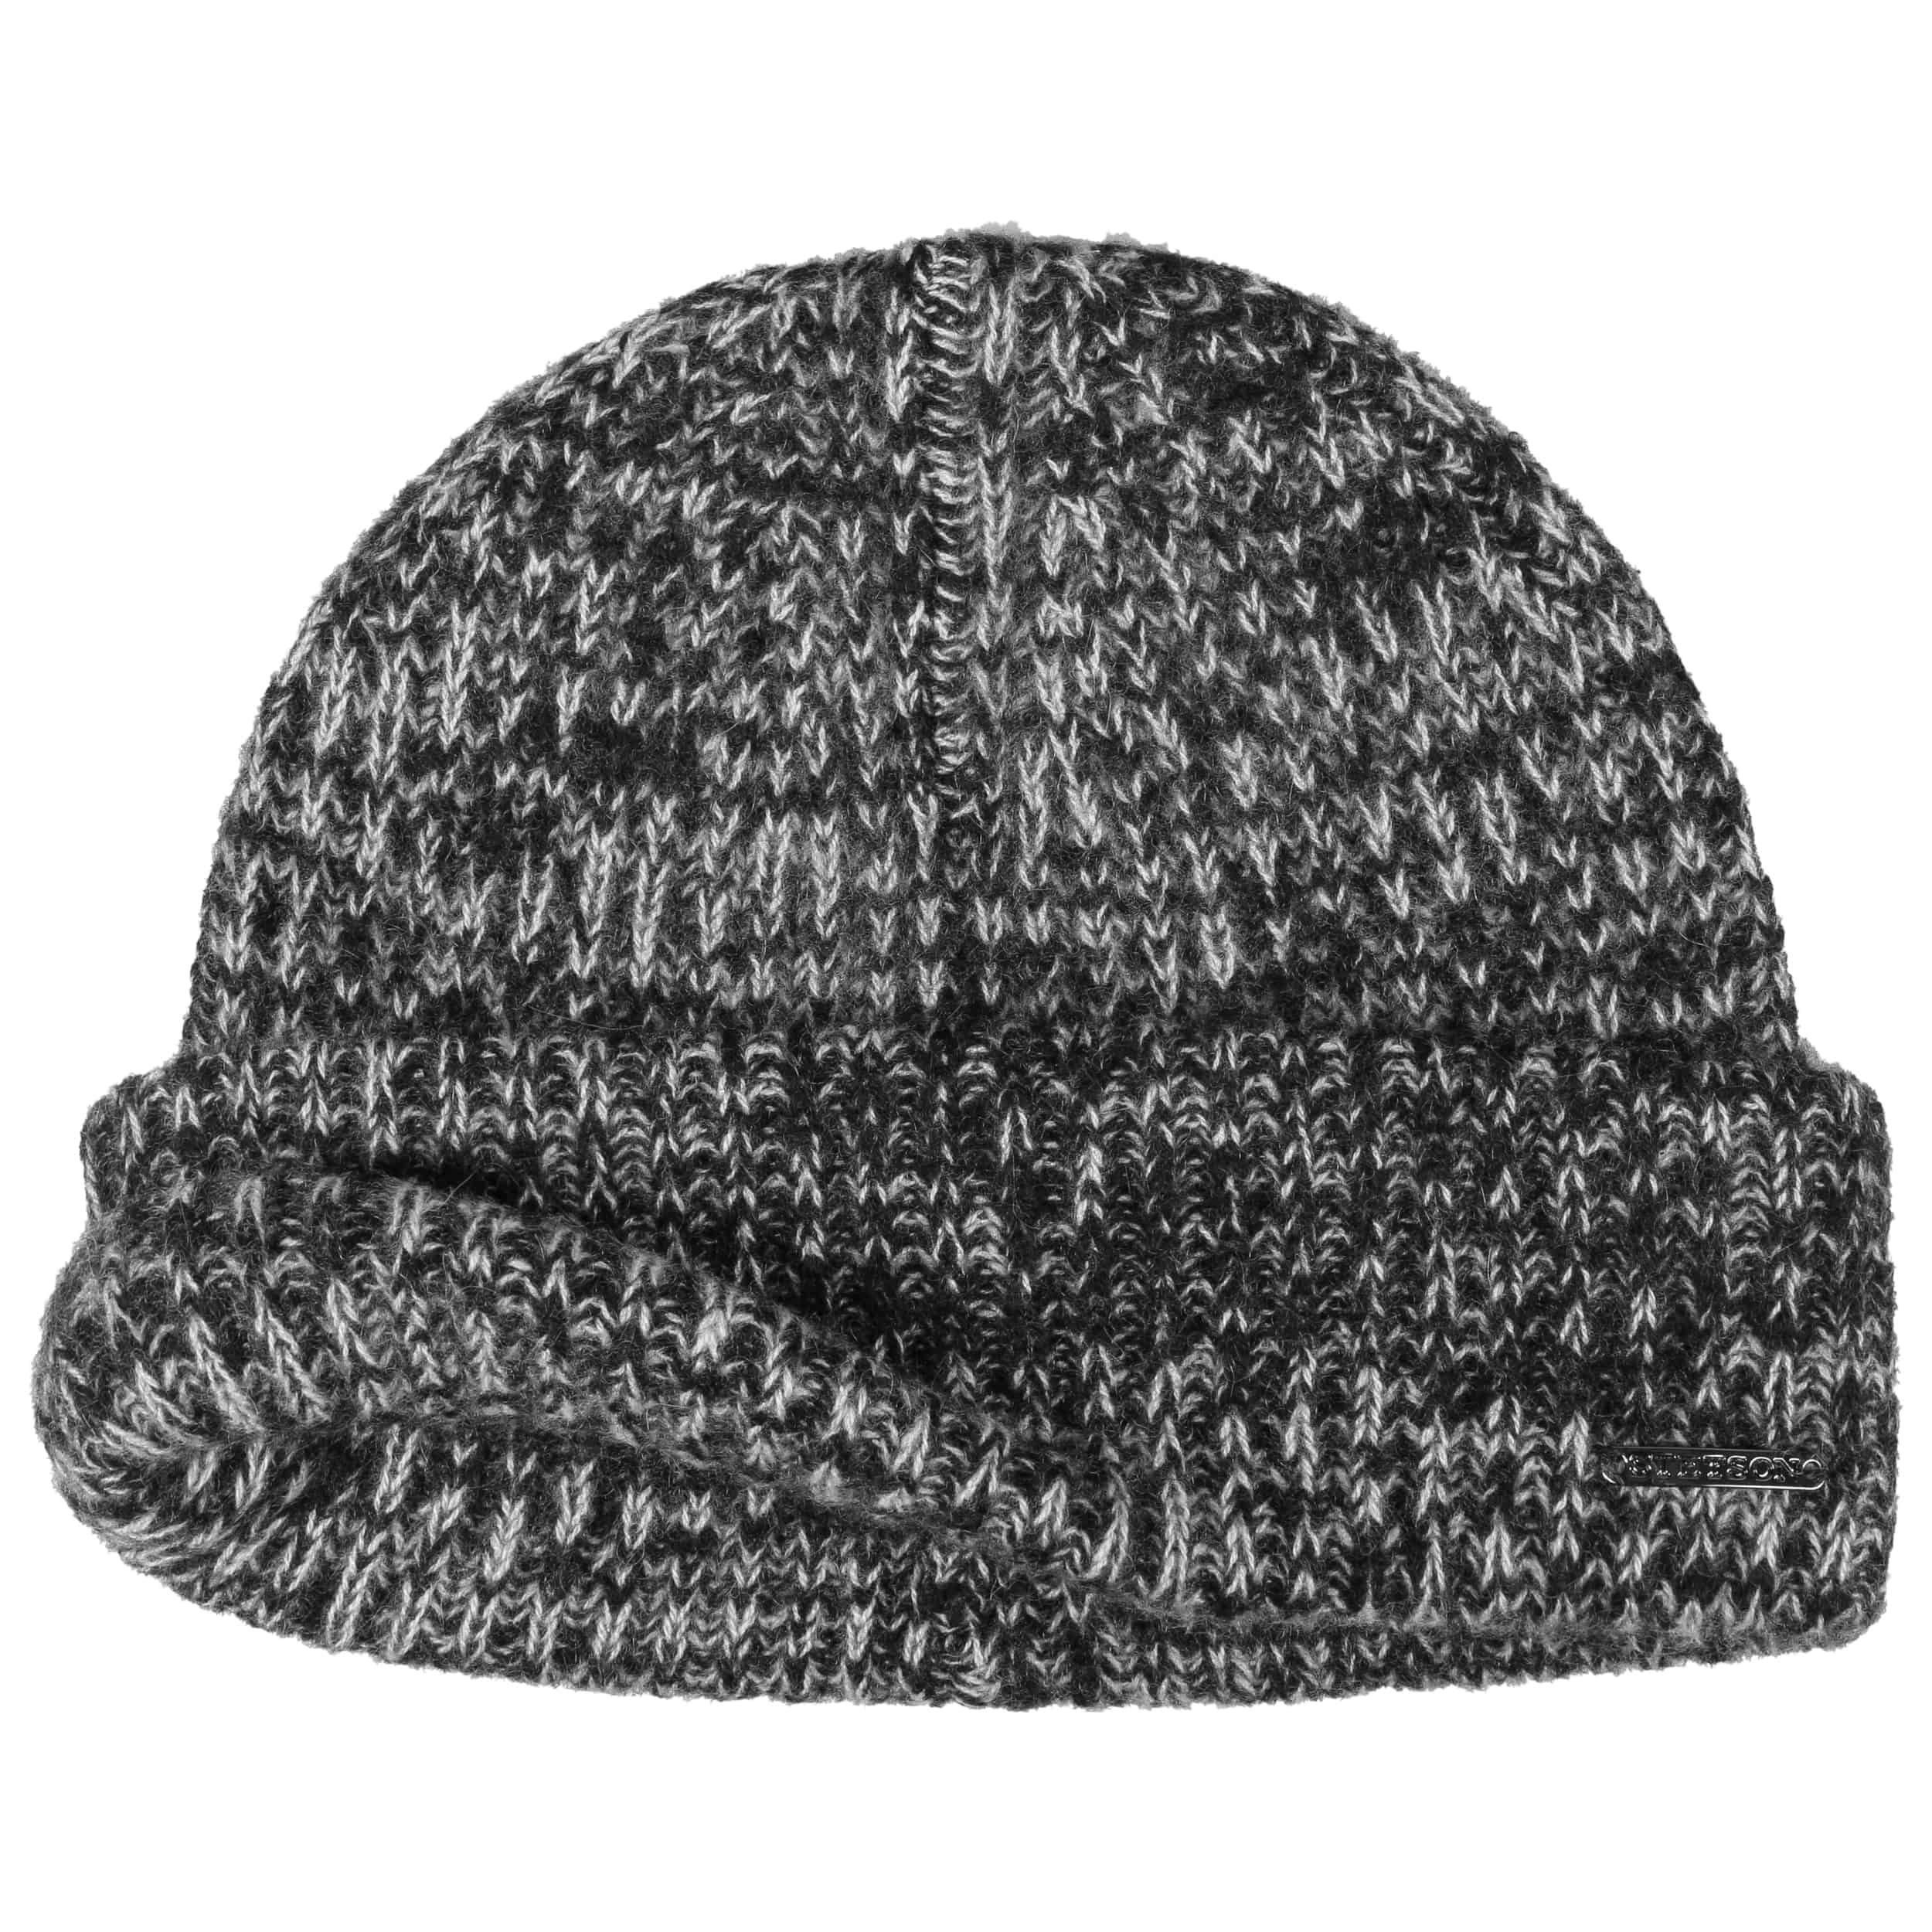 Surth Mélange Cashmere Pull on Hat black-white